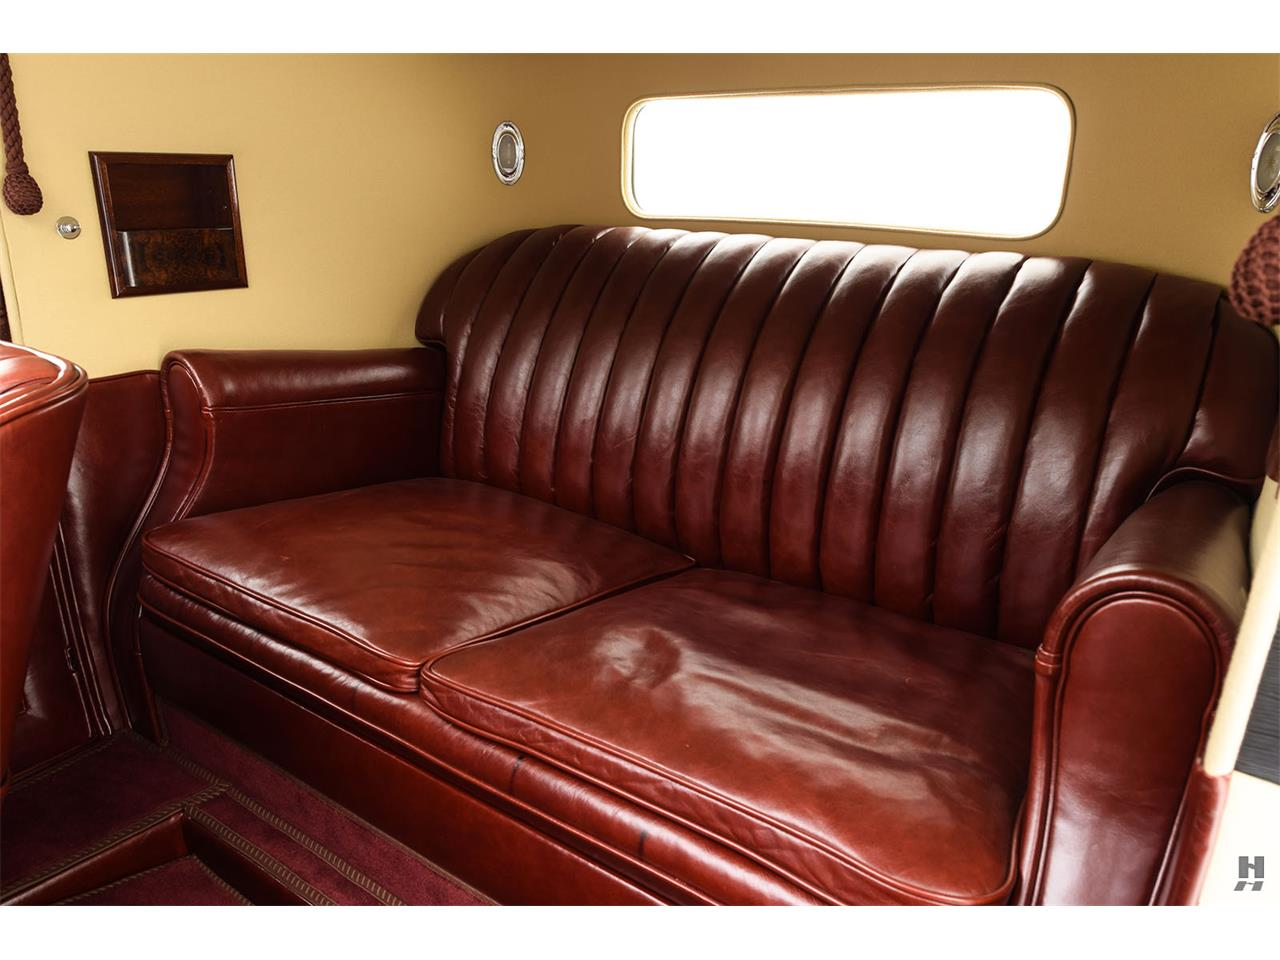 Large Picture of Classic 1930 Speed Six Tourer located in Saint Louis Missouri - $4,250,000.00 Offered by Hyman Ltd. Classic Cars - PYOI